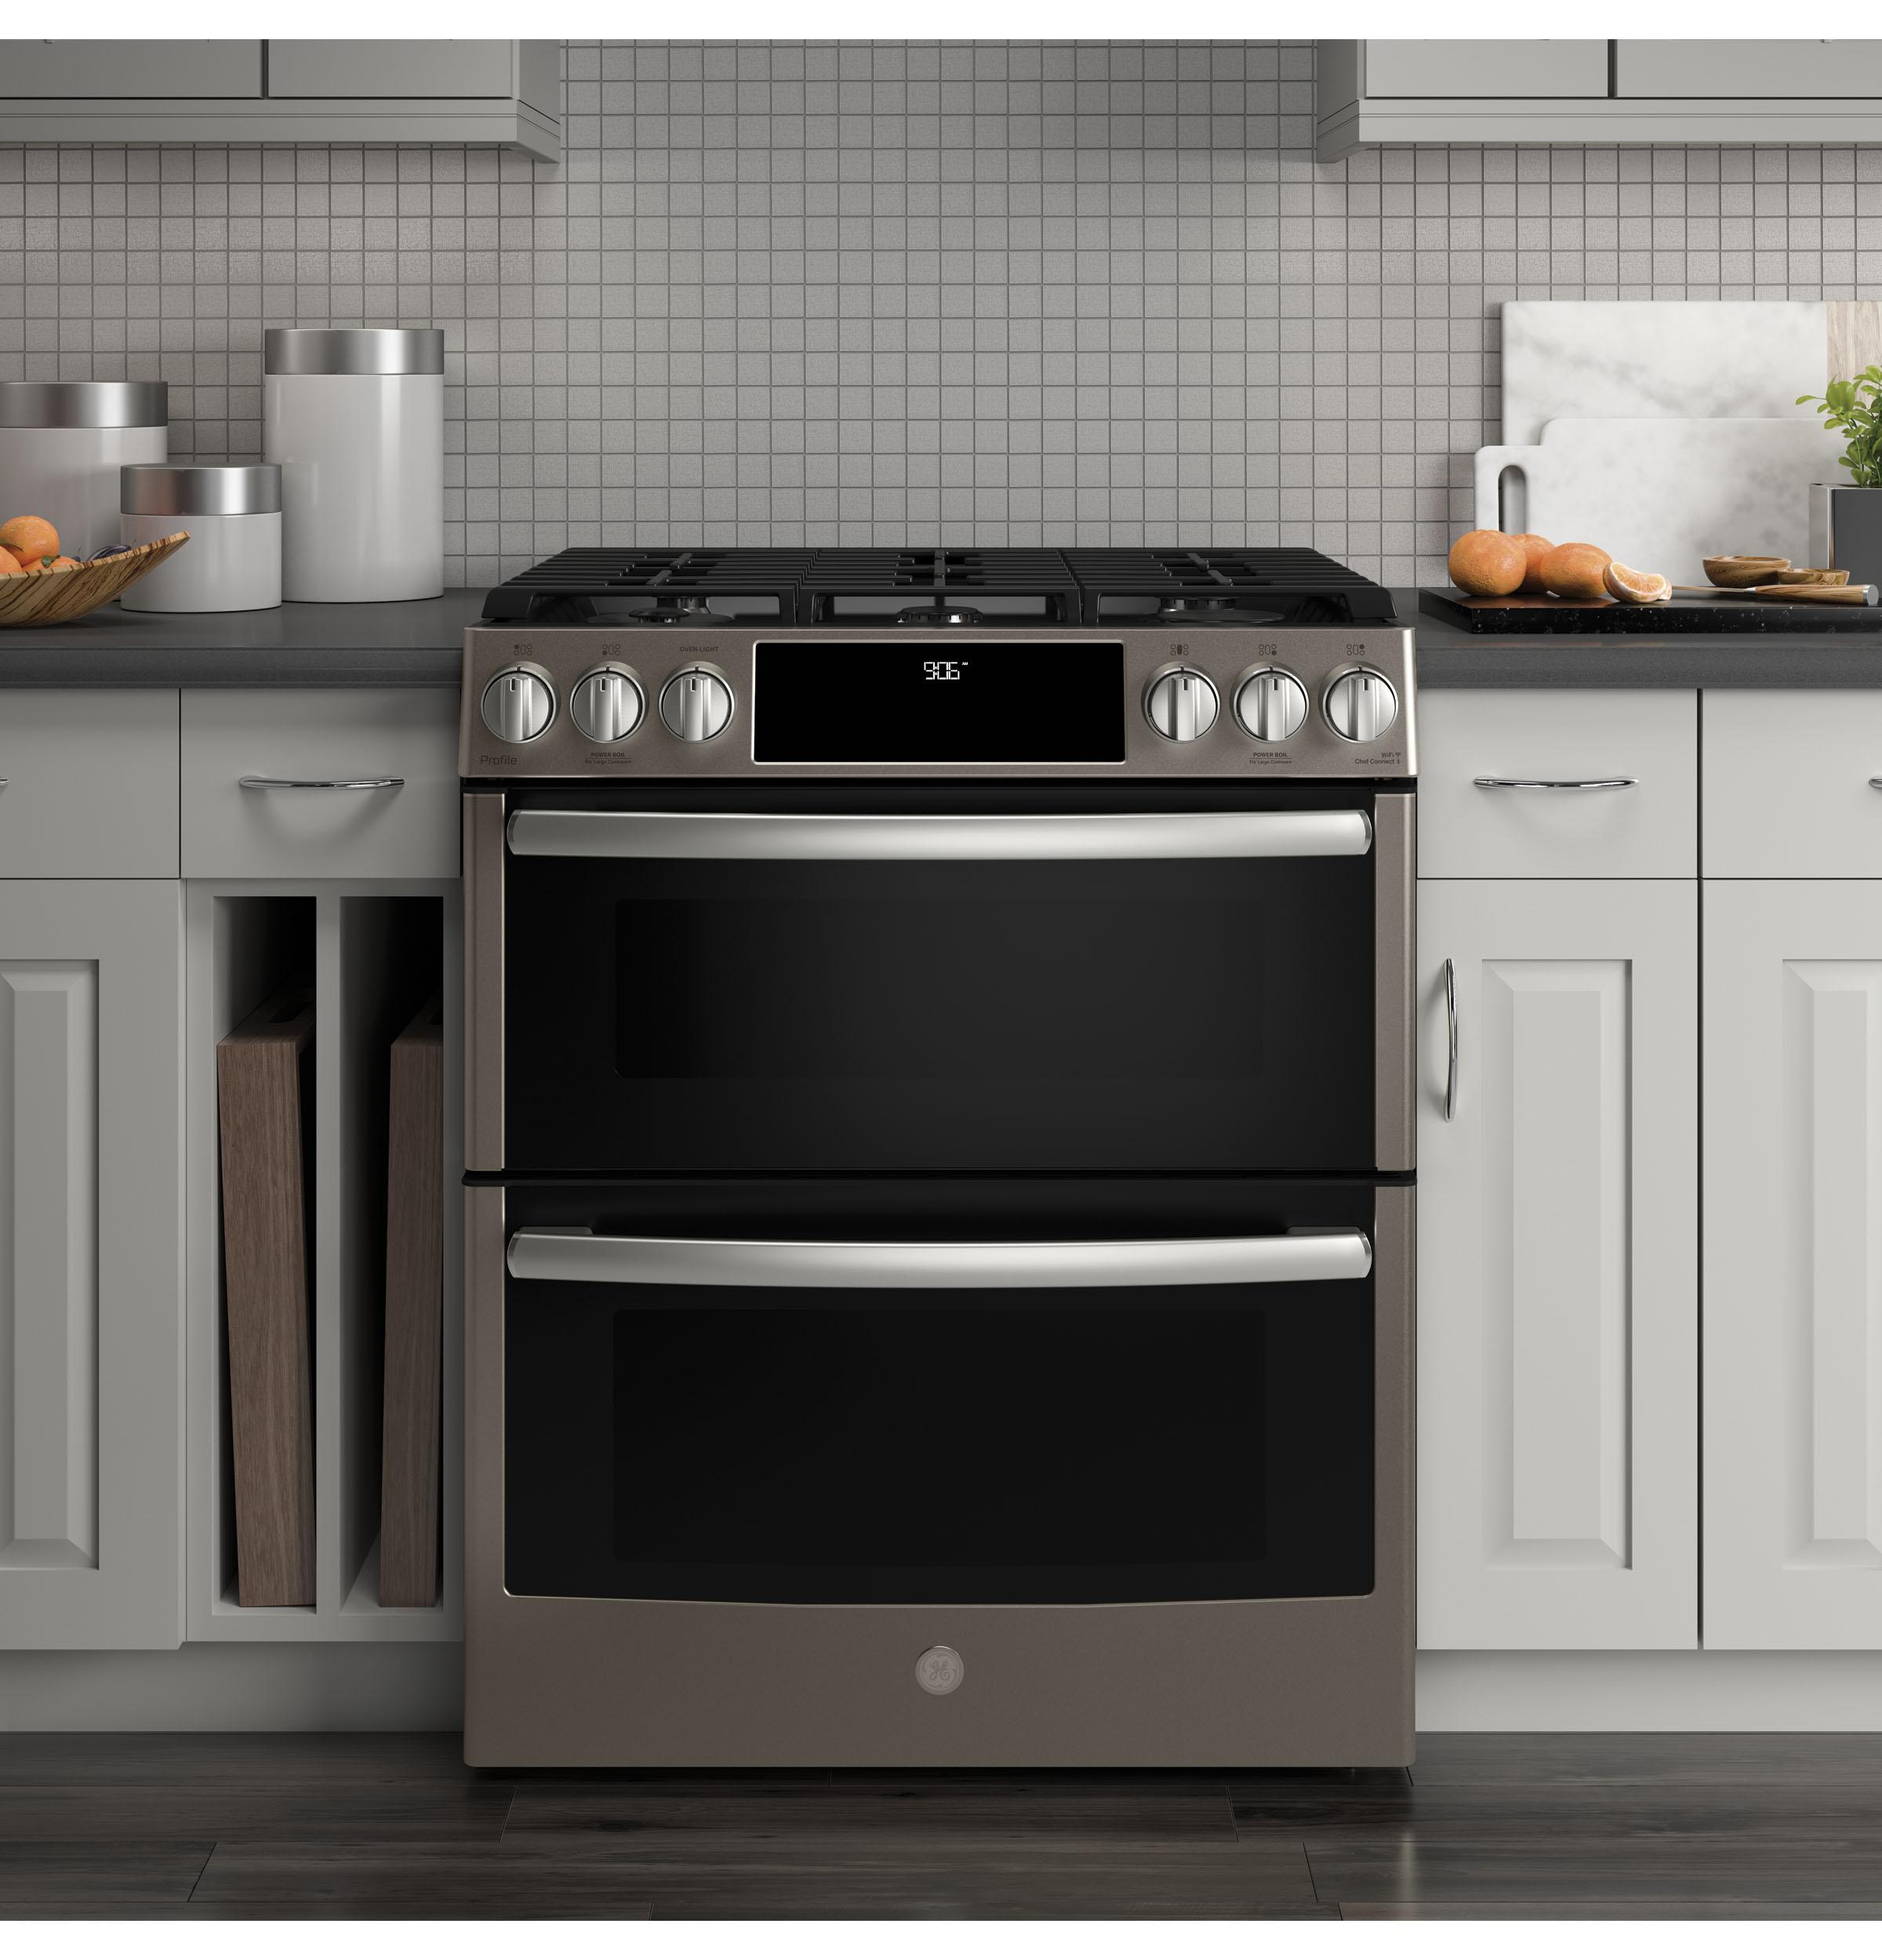 Pgs960eelesge Profile Ge Profiletm Series 30 Slide In Front Wiring Electric Oven And Gas Hob Control